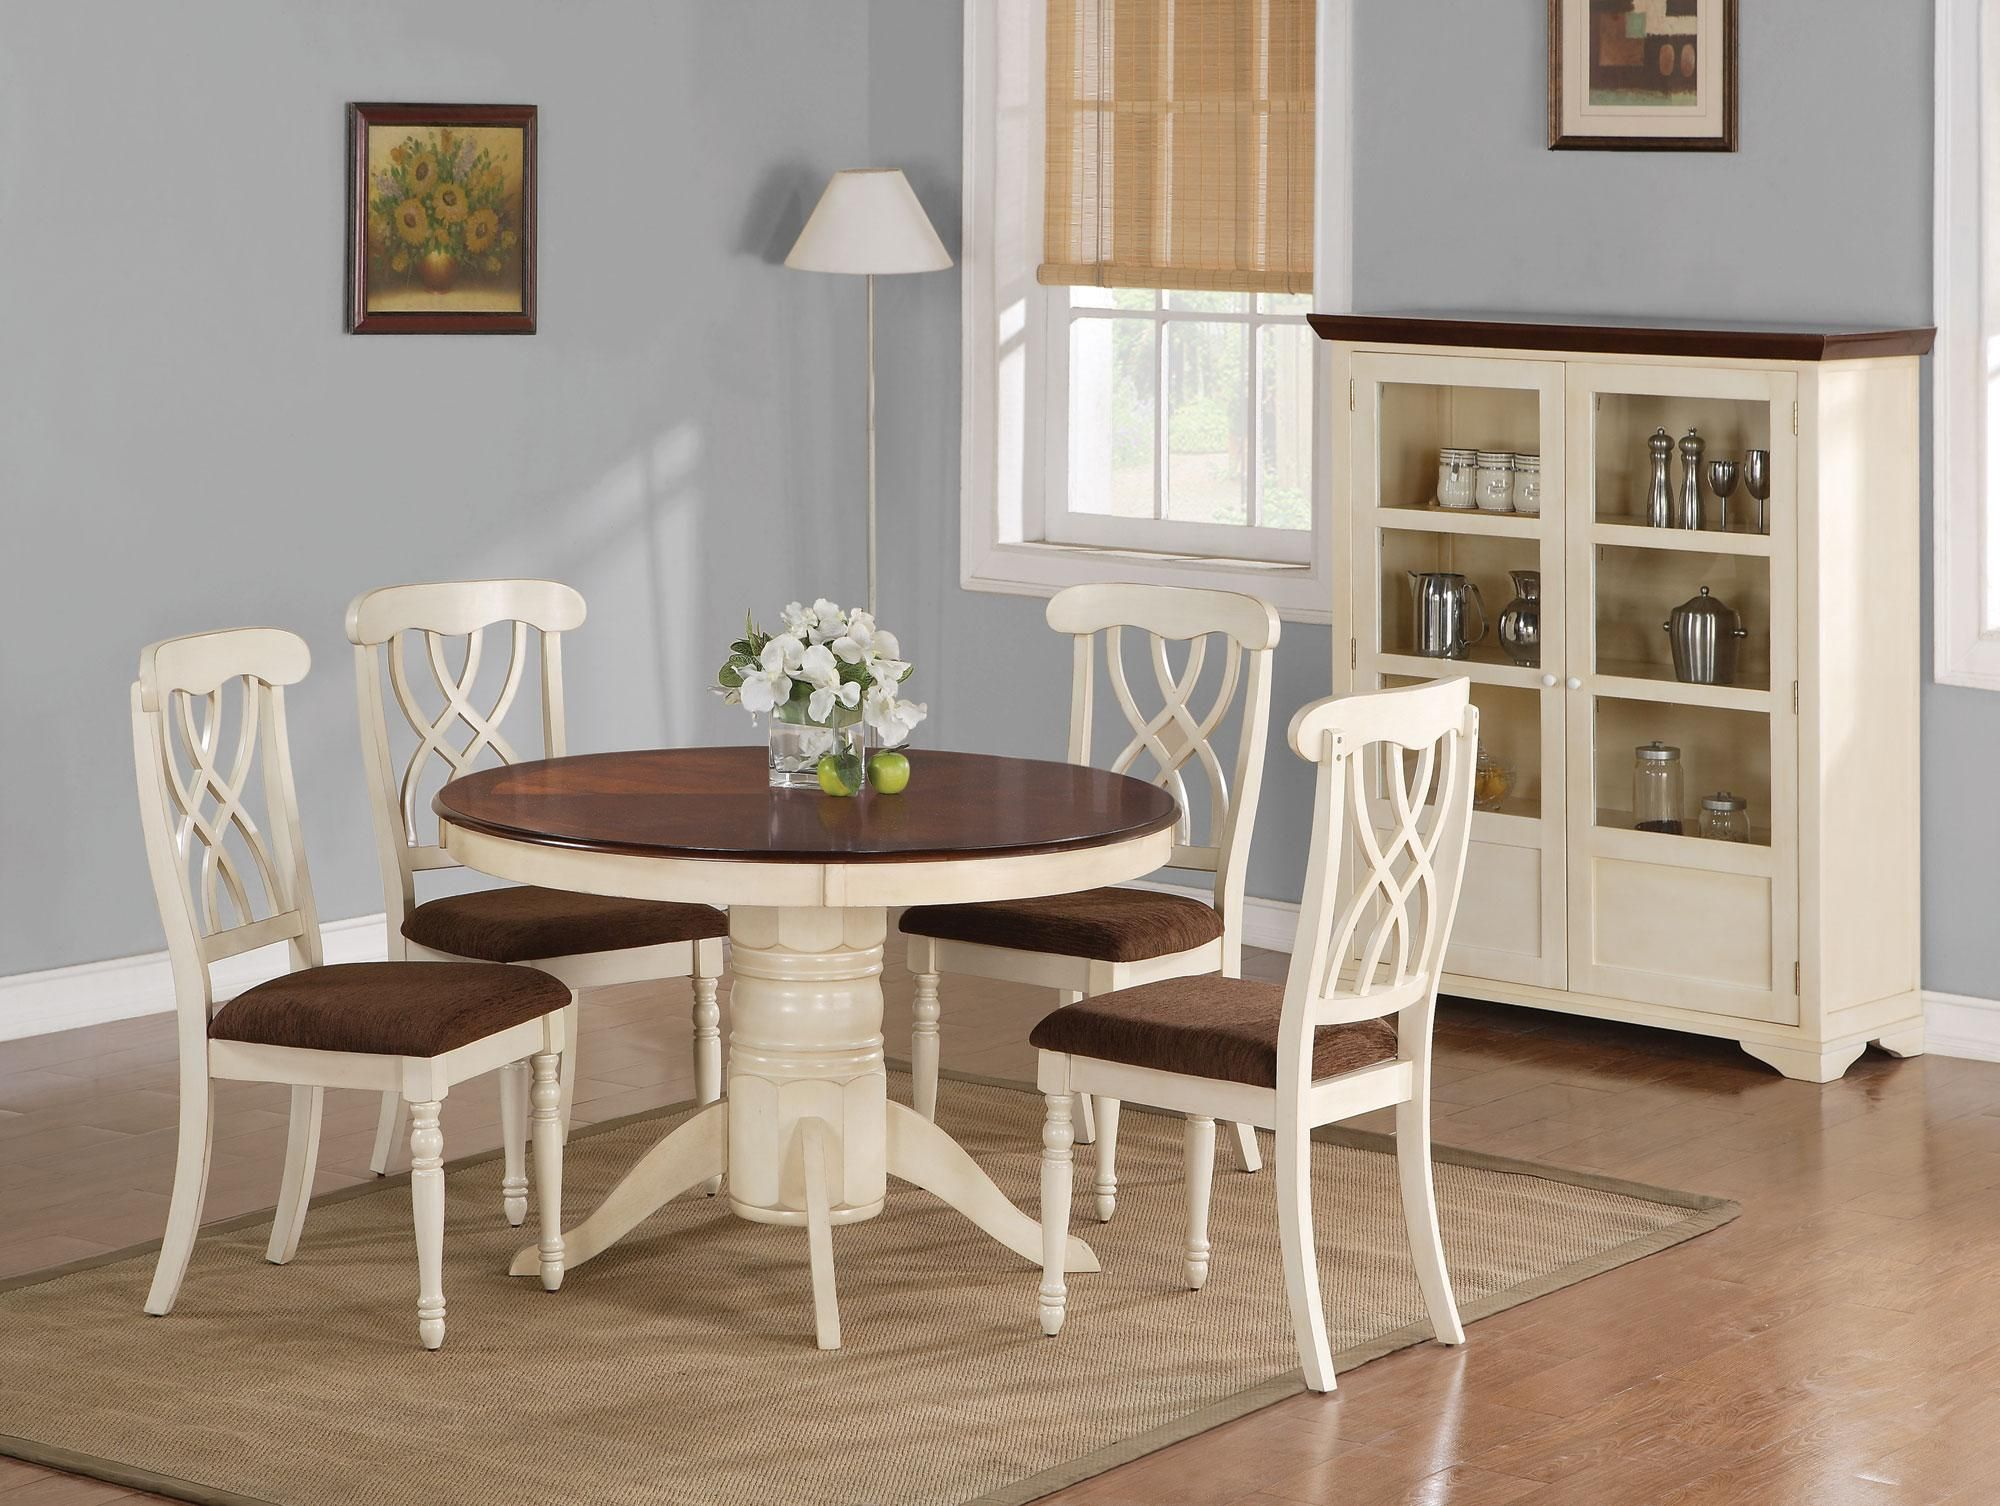 Amazing Expandable Dining Table For Small Spaces Or Areas Cheap Entrancing Dining Room Furniture Ireland Review